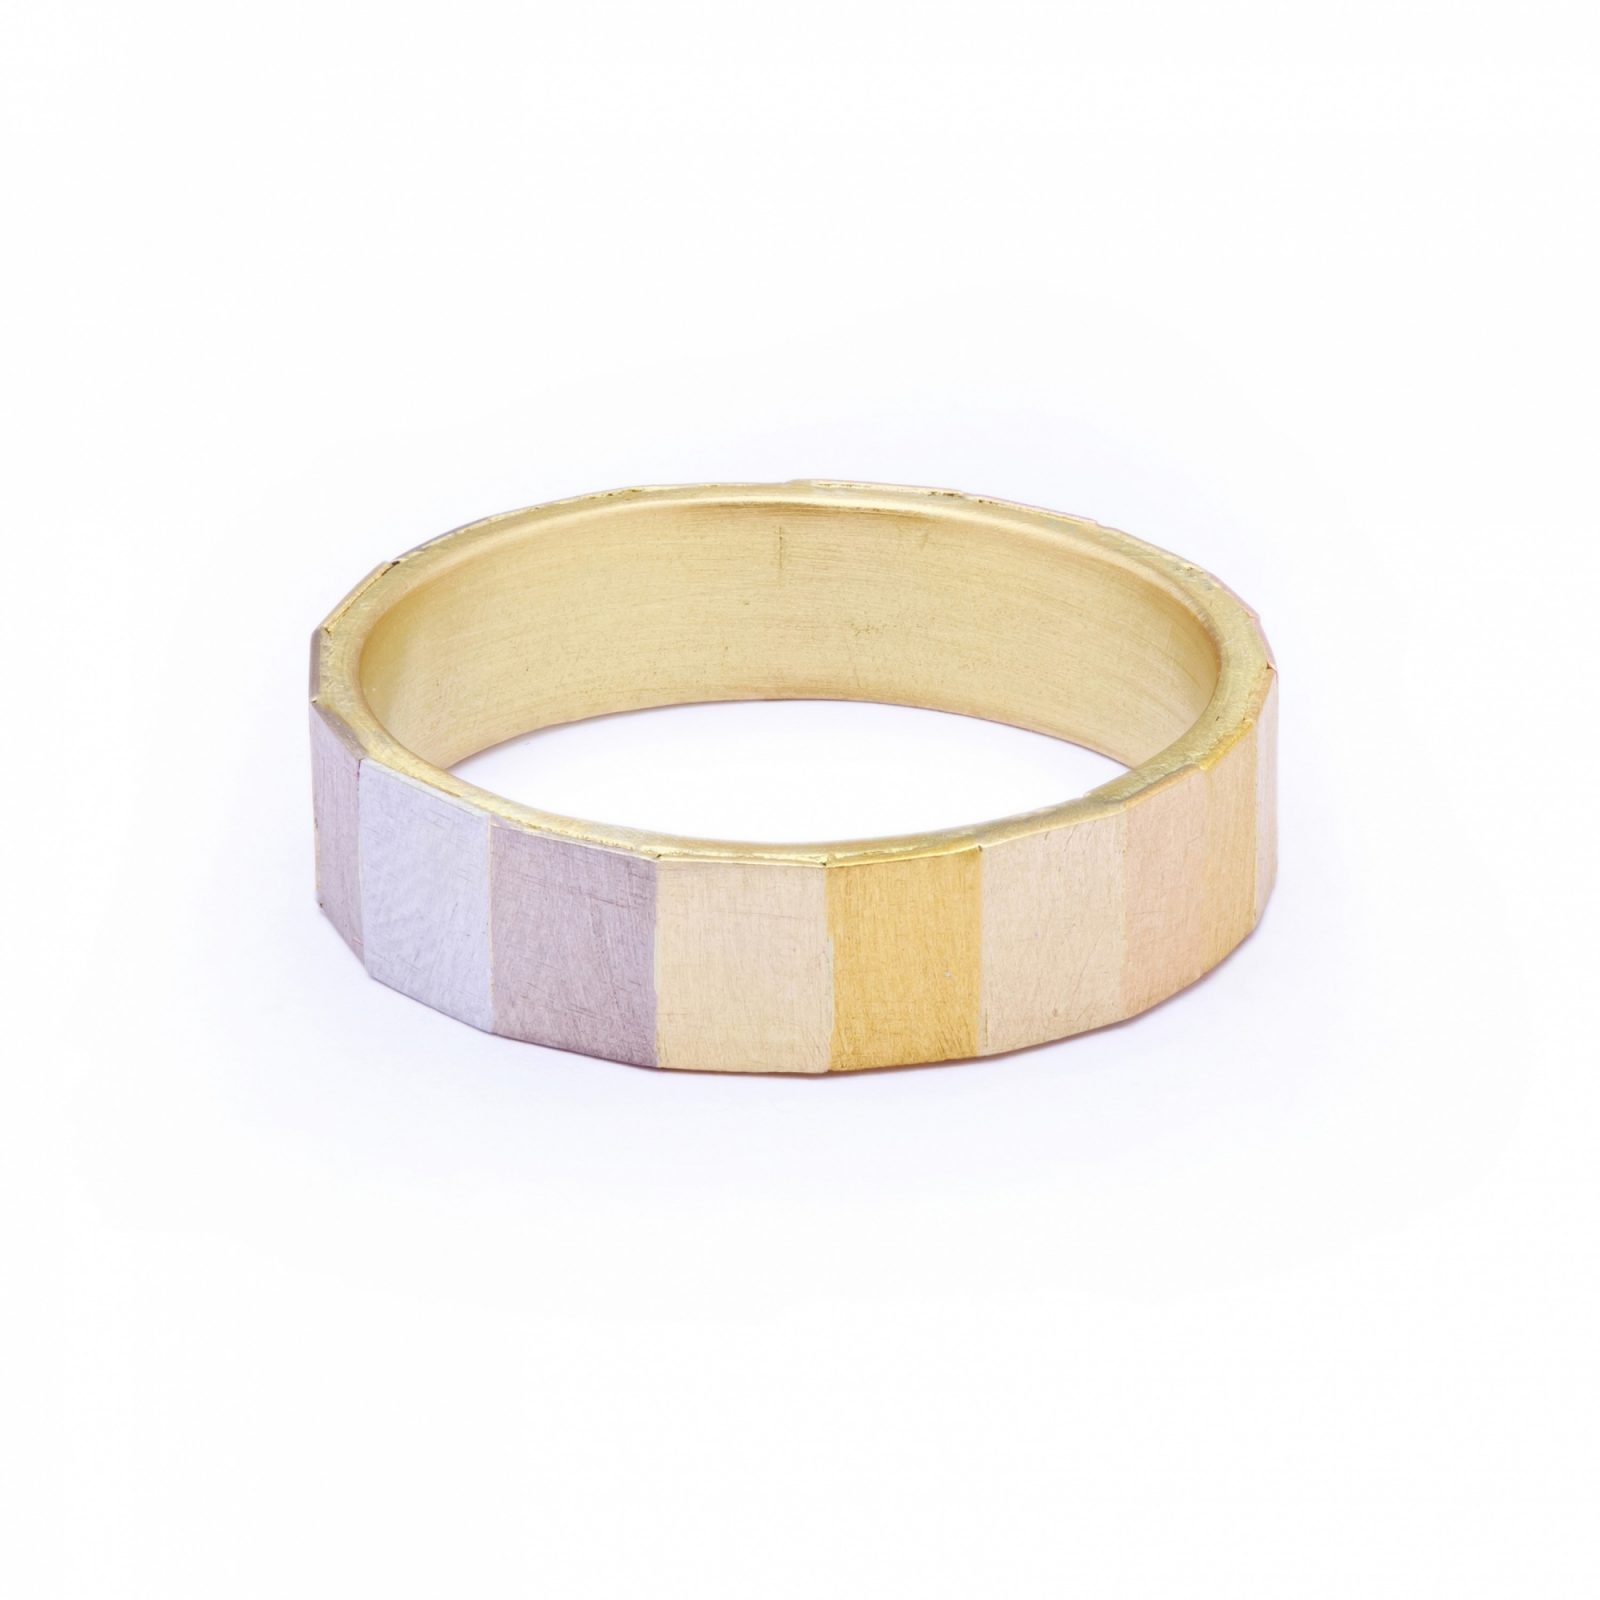 Sia Taylor KR16 RAIN Rainbow Gold Large Faceted Band WB